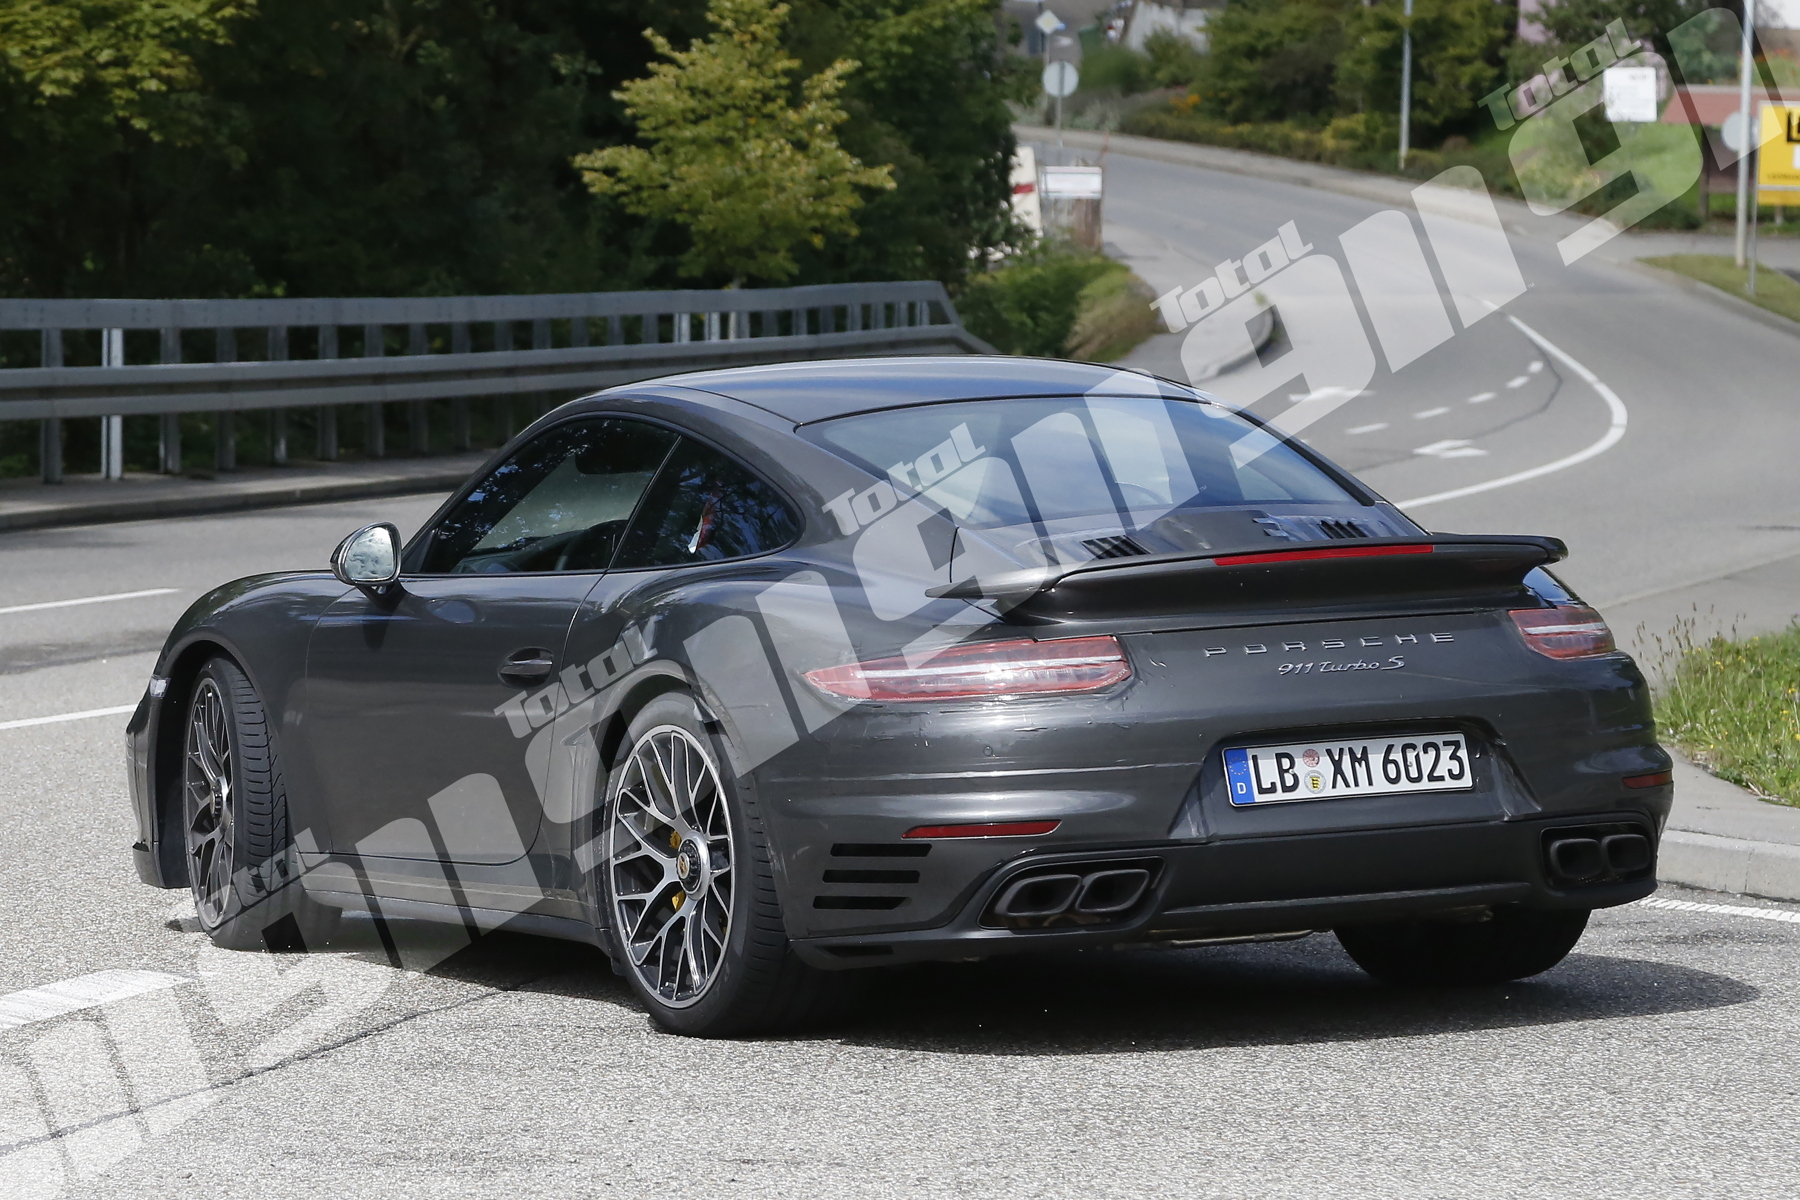 Exclusive New Porsche 911 Turbo S Spy Shots Put 992 Rumours To Bed Total 911